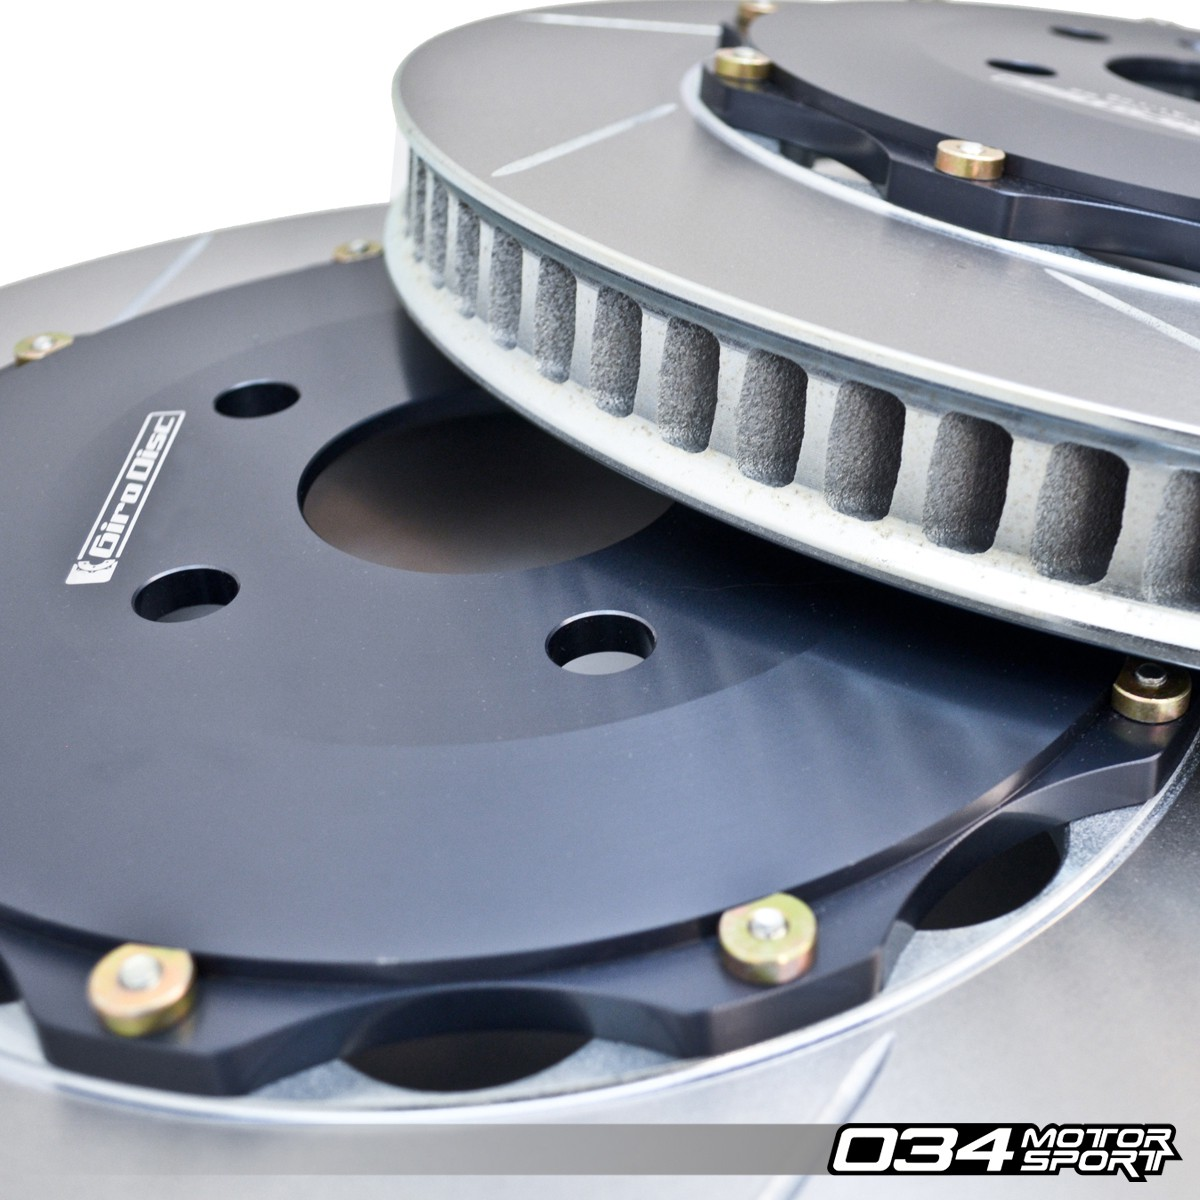 GiroDisc Rear 2-Piece Floating Rotor Pair for MkVII Volkswagen Golf R (MkVII) | GIR-A2-171